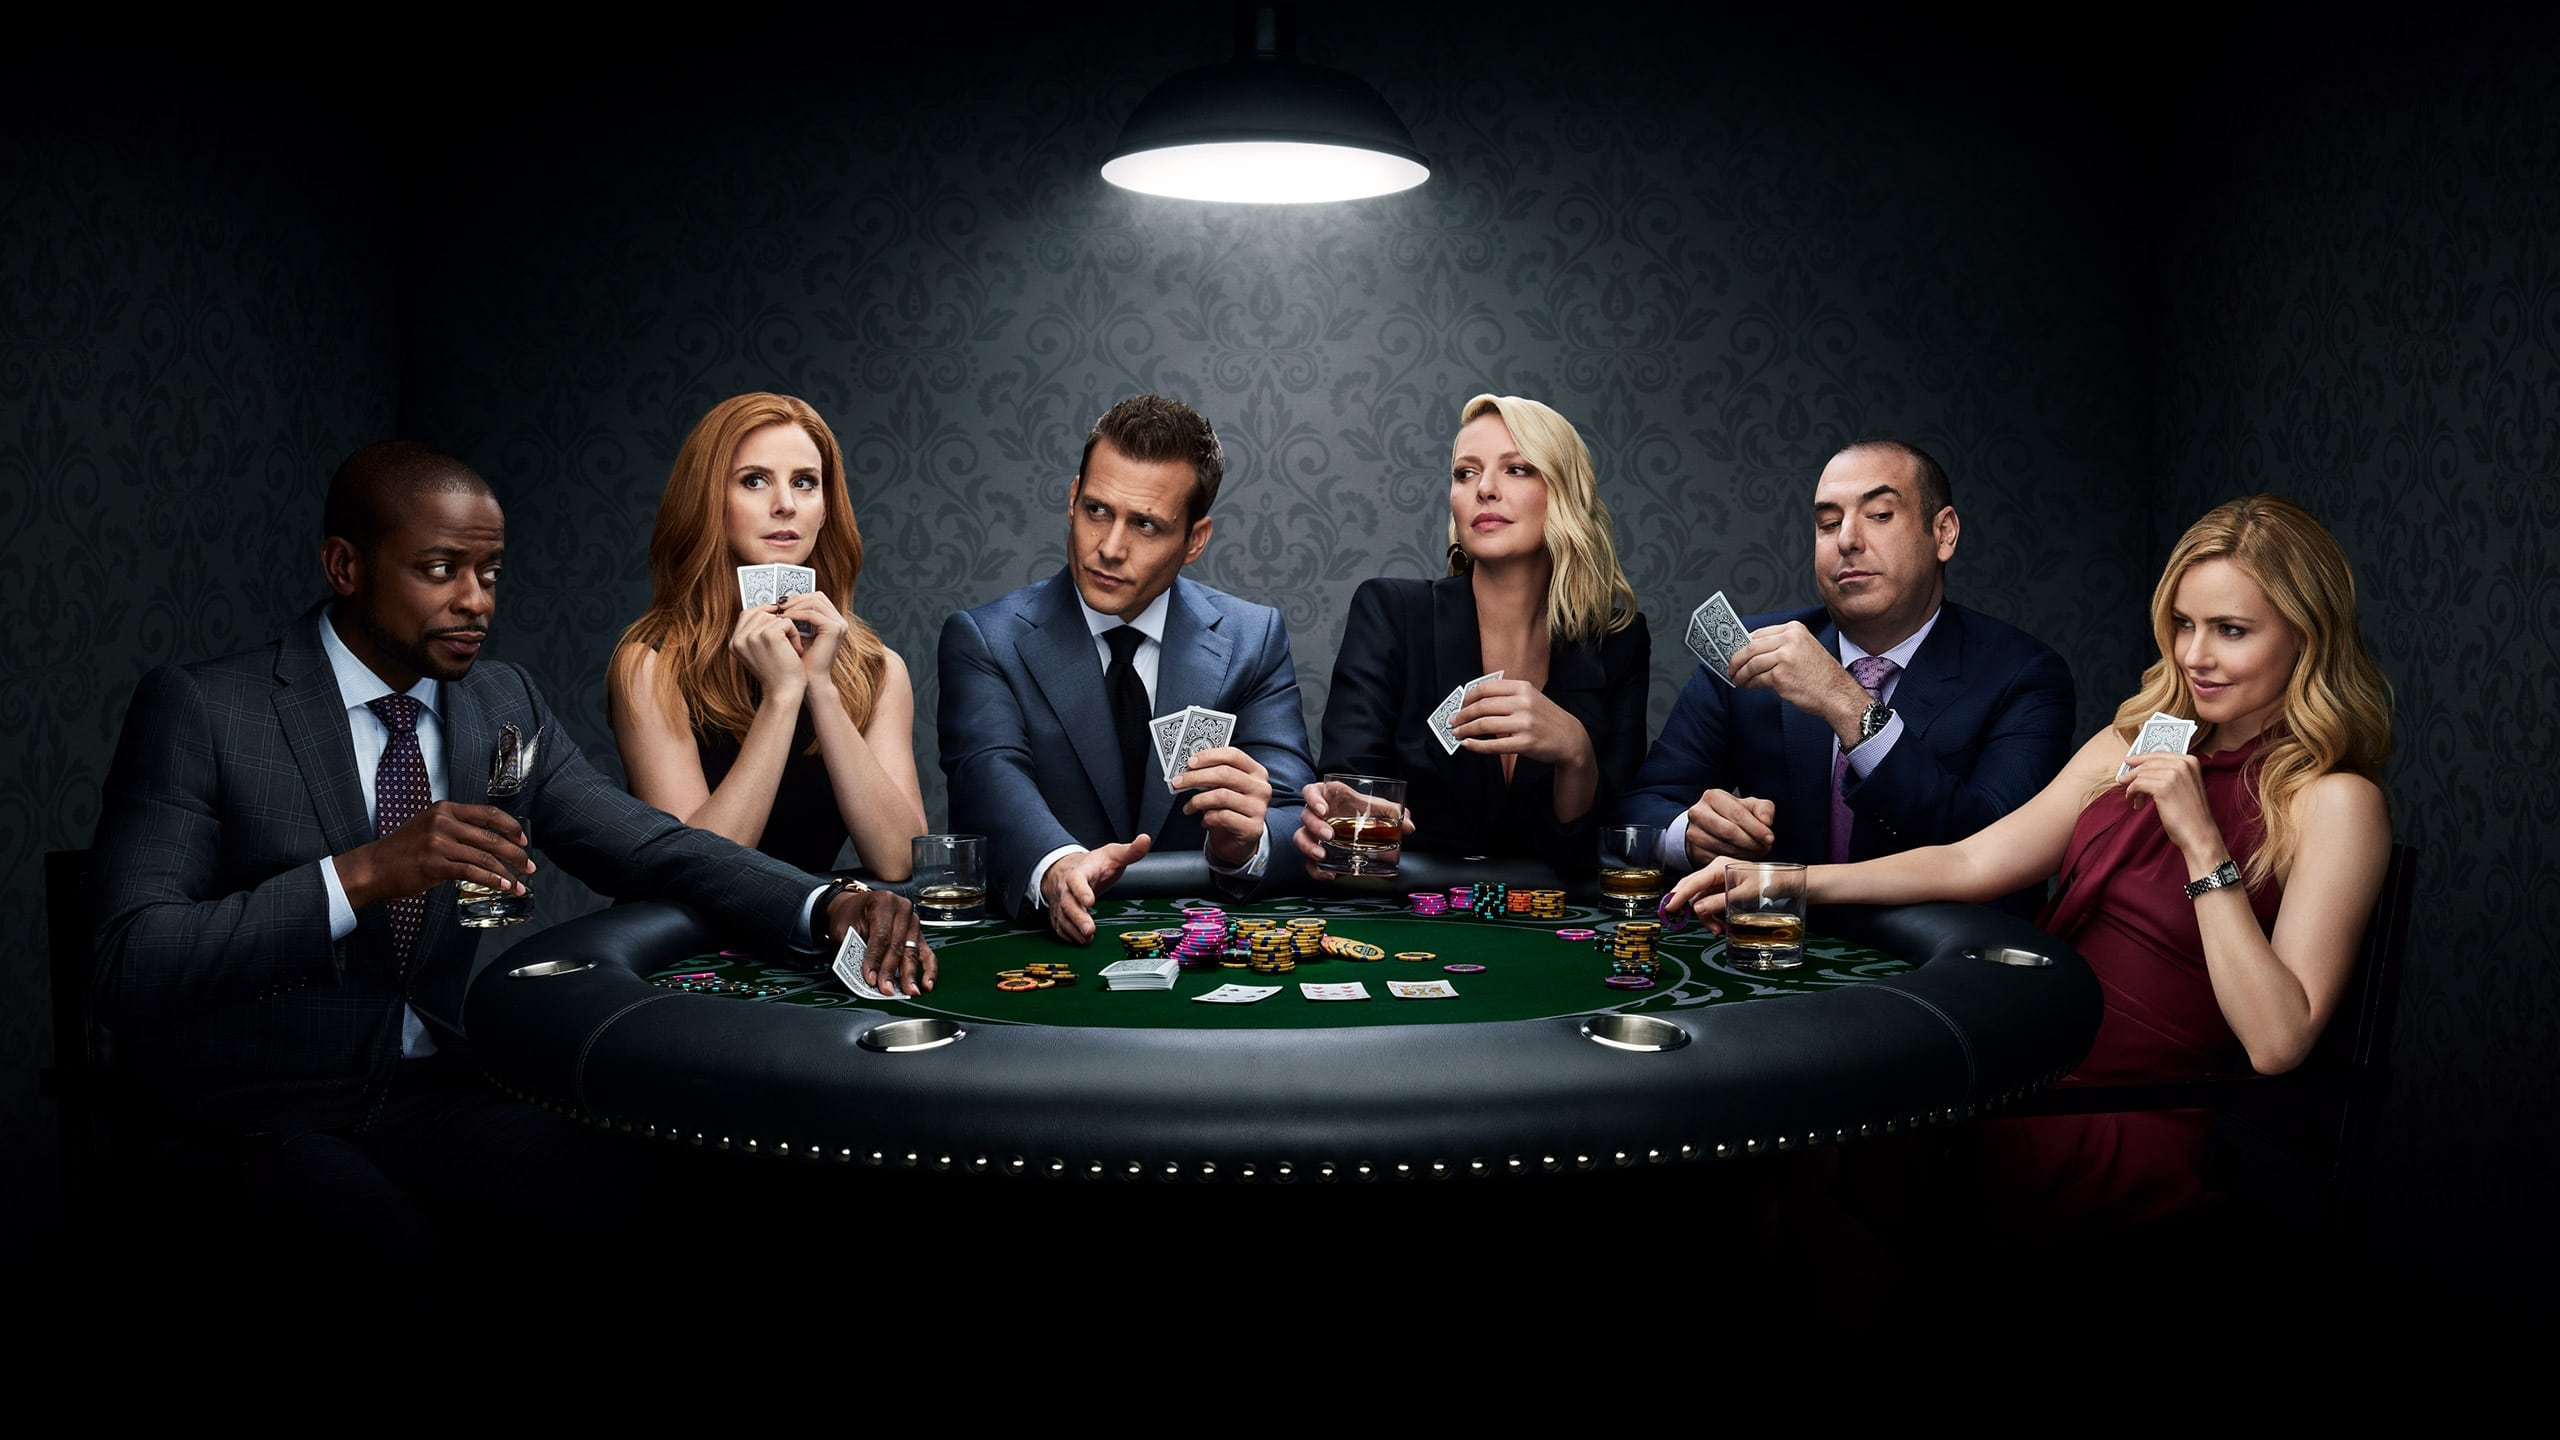 Suits follows college drop-out Mike Ross, who accidentally lands a job with one of New York's best legal closers, Harvey Specter. They soon become a winning team with Mike's raw talent and photographic memory, and Mike soon reminds Harvey of why he went into the field of law in the first place.